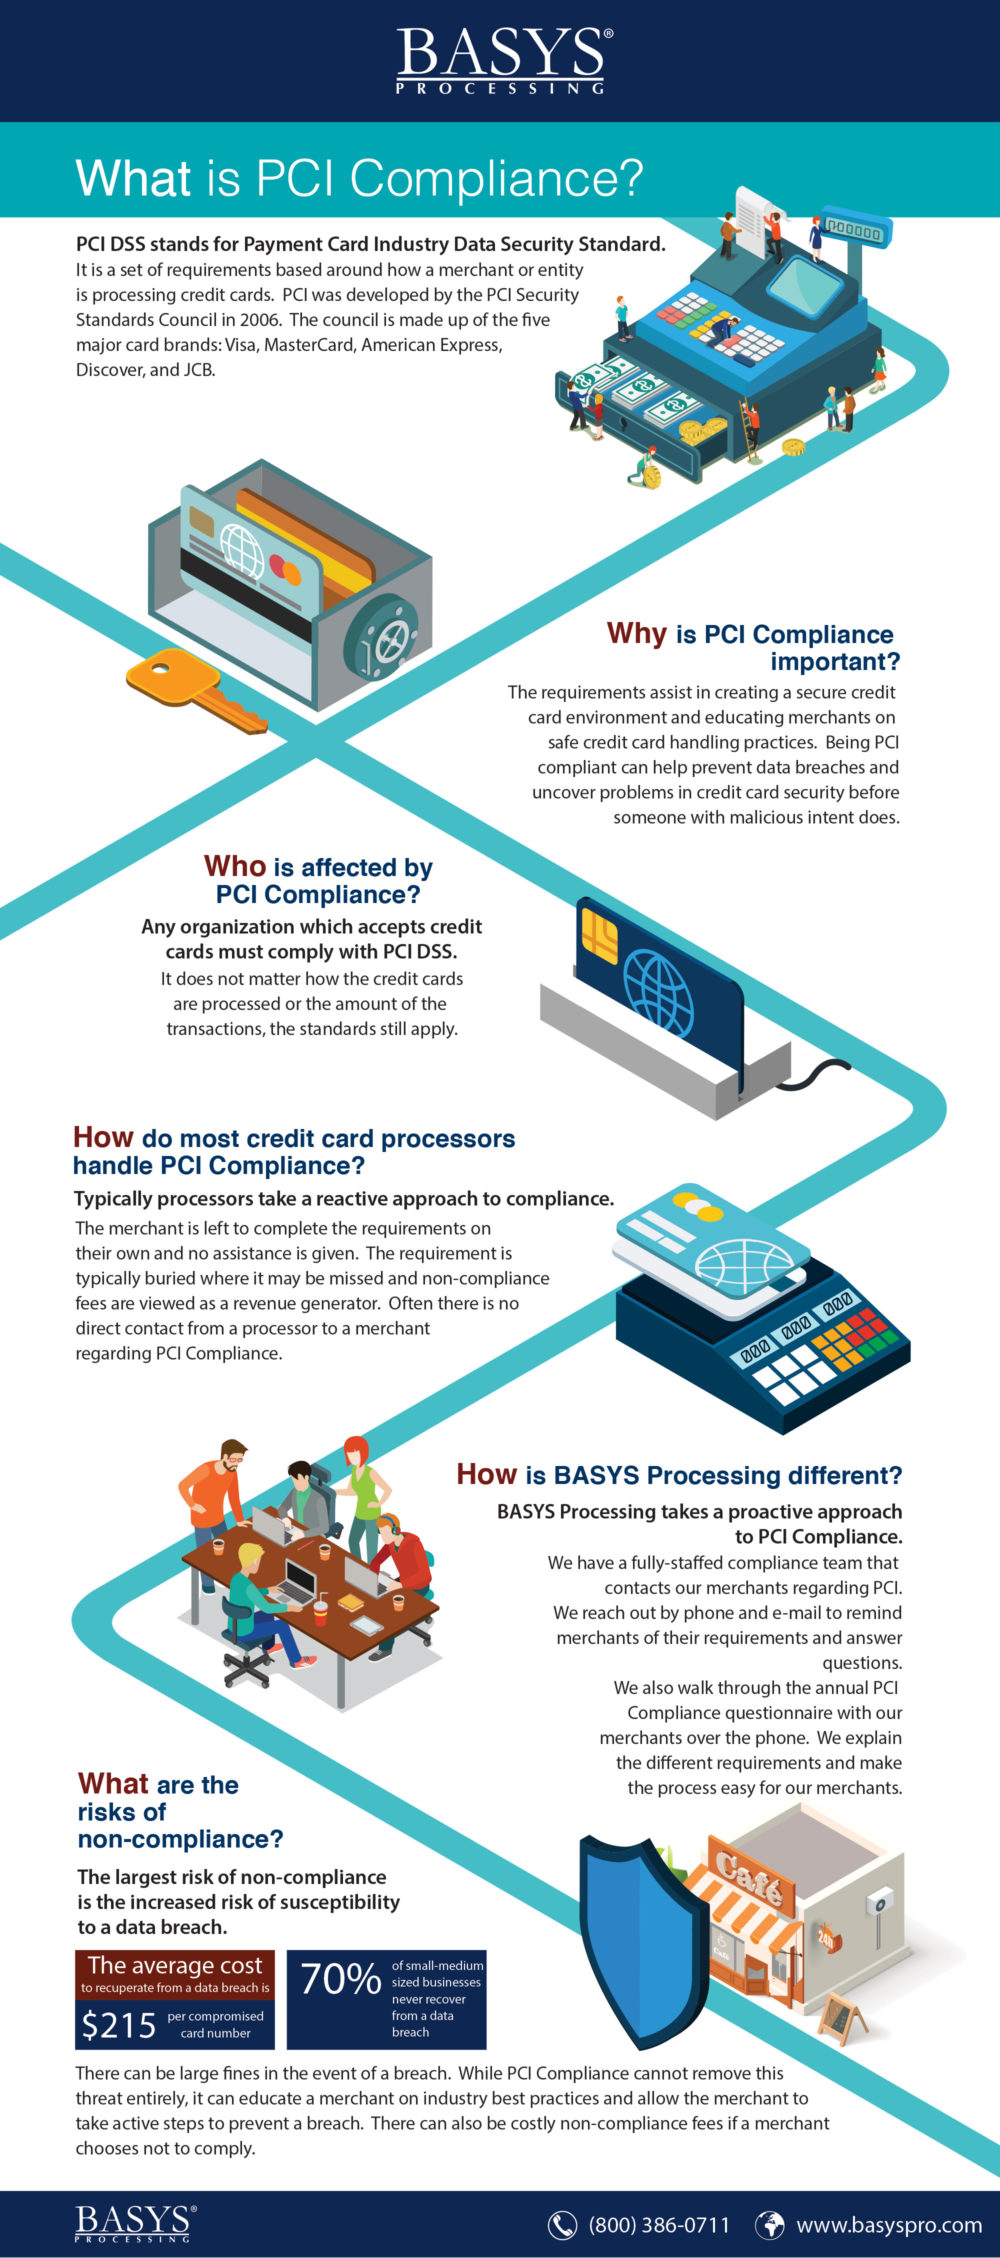 BASYS-Infographic-What-is-PCI-Compliance